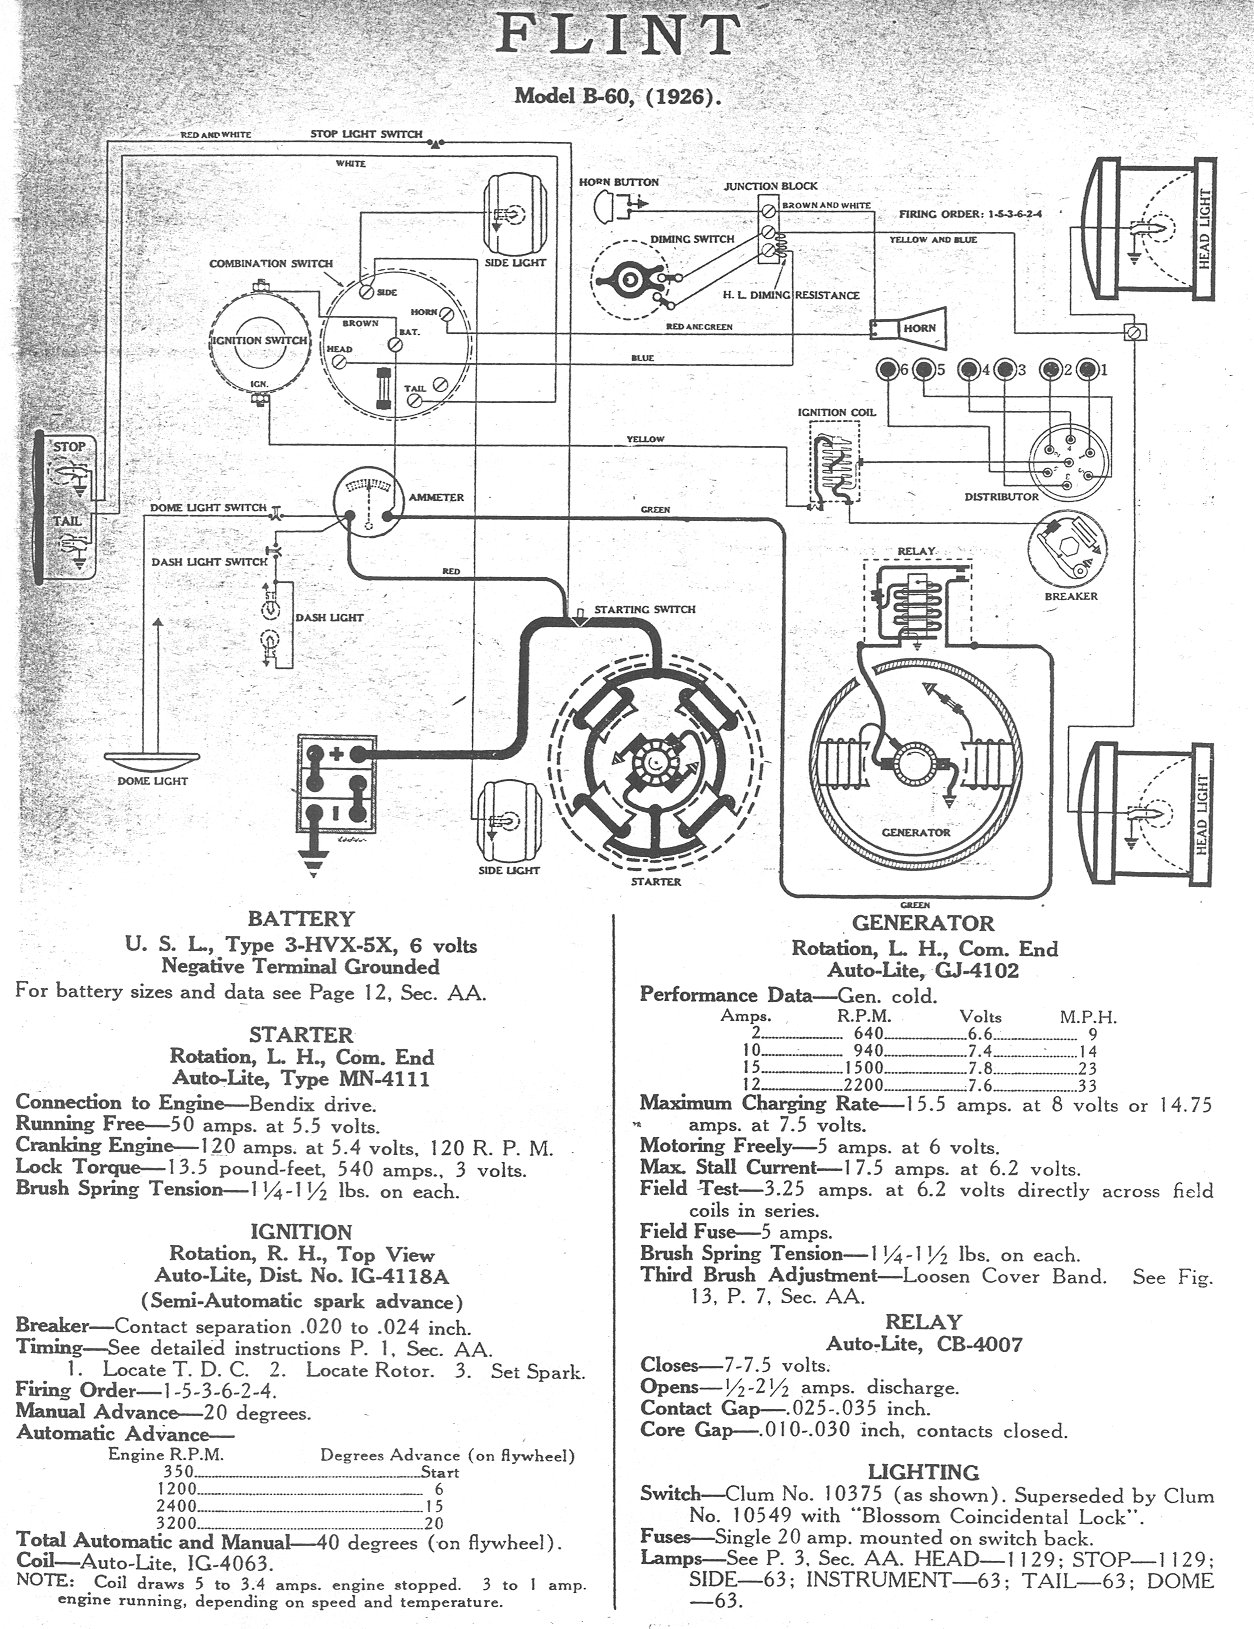 Ford Model A Schematics Pictures to Pin on Pinterest